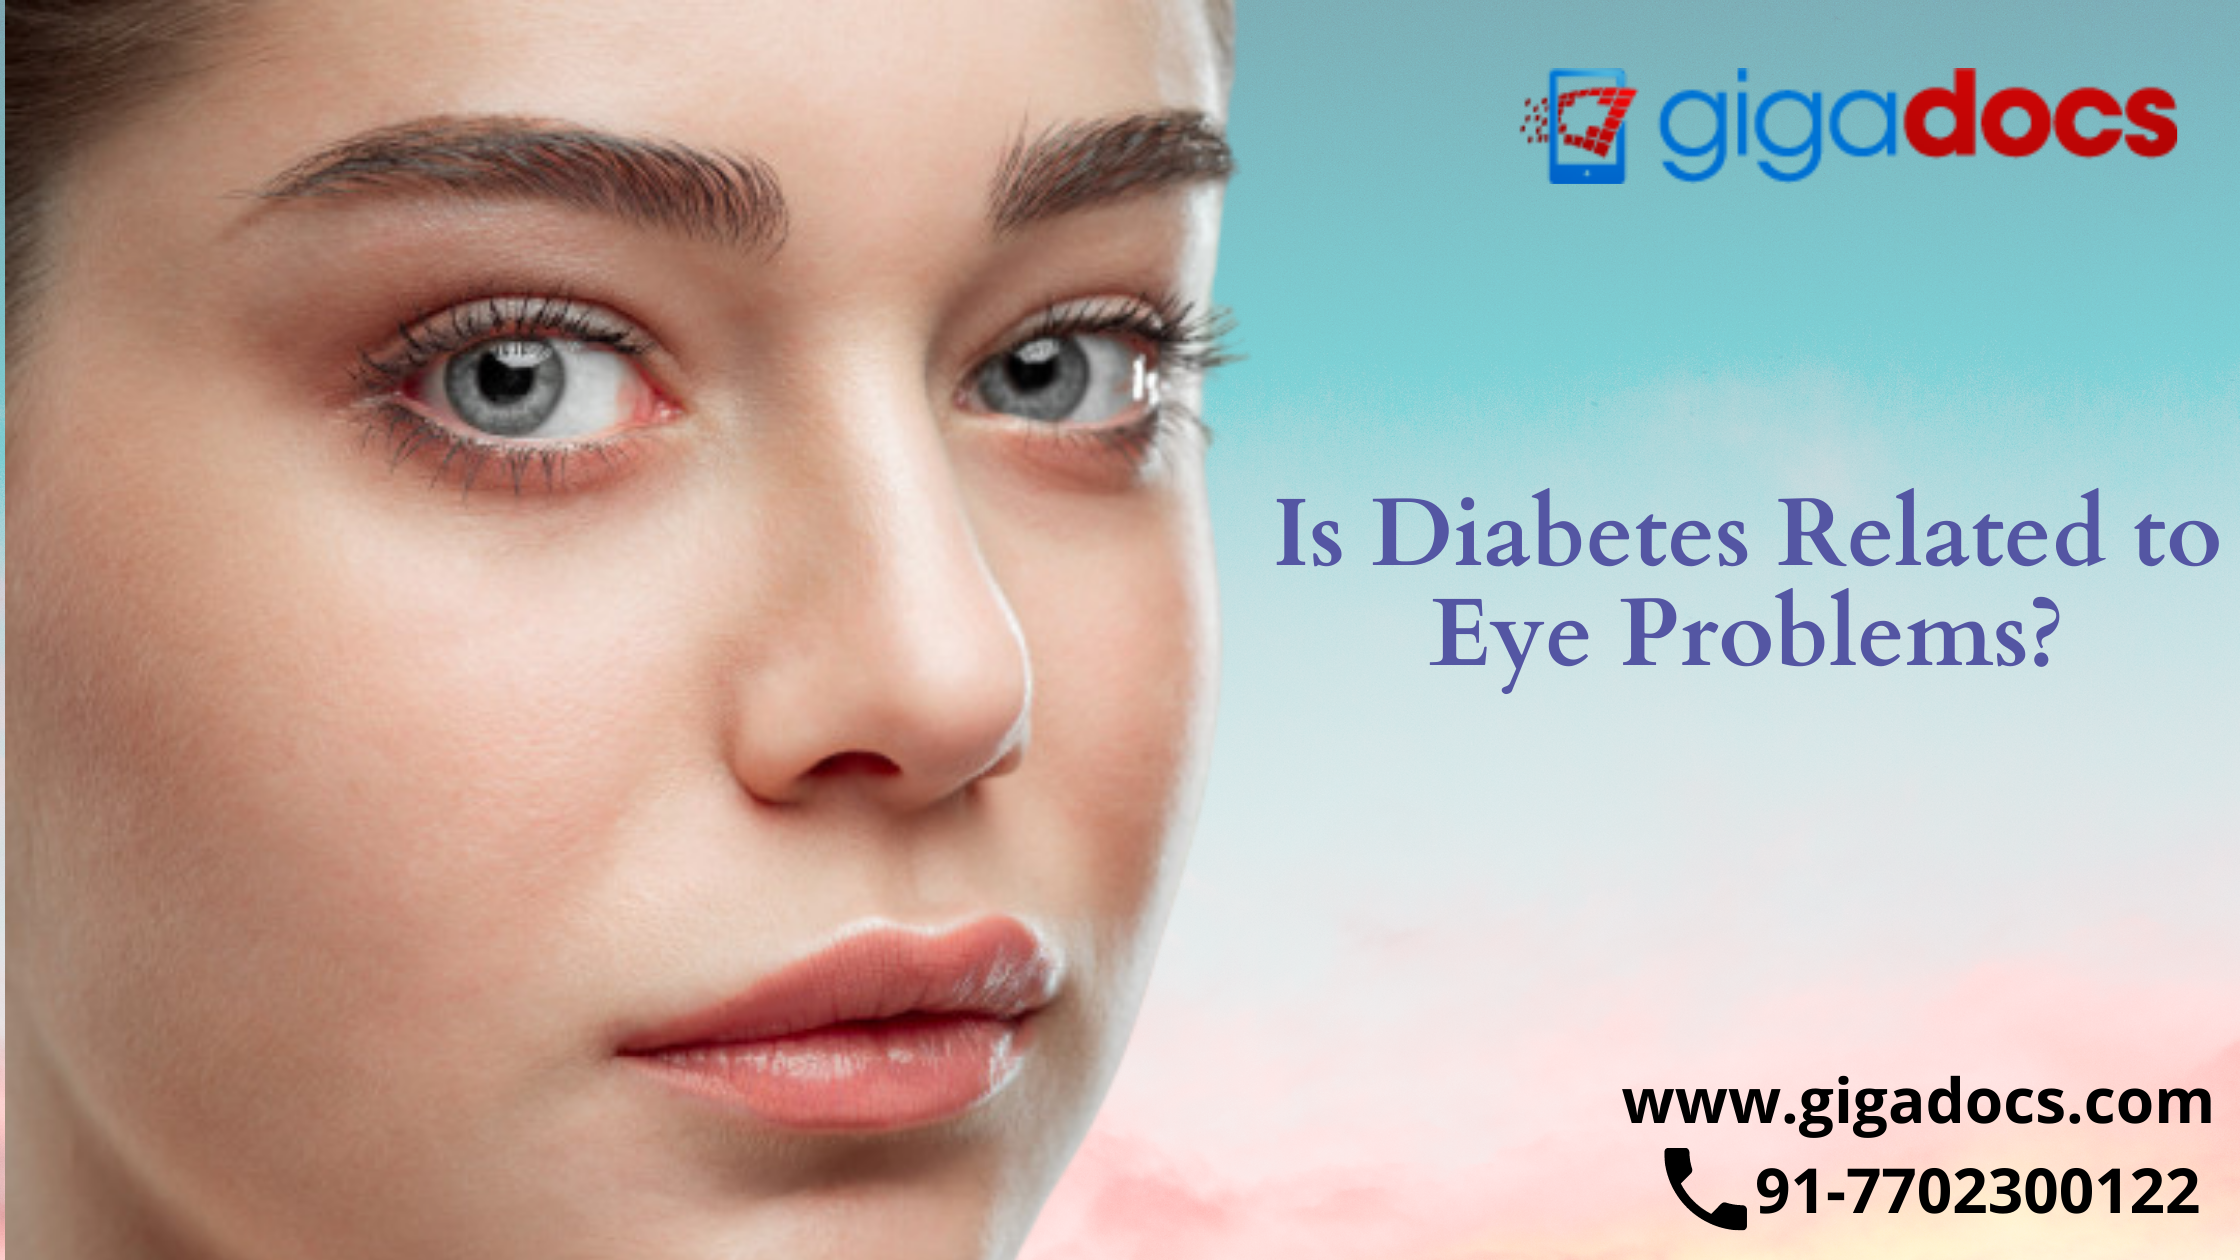 Diabetes and Eye Care: Is Diabetes Related to Eye Problems?